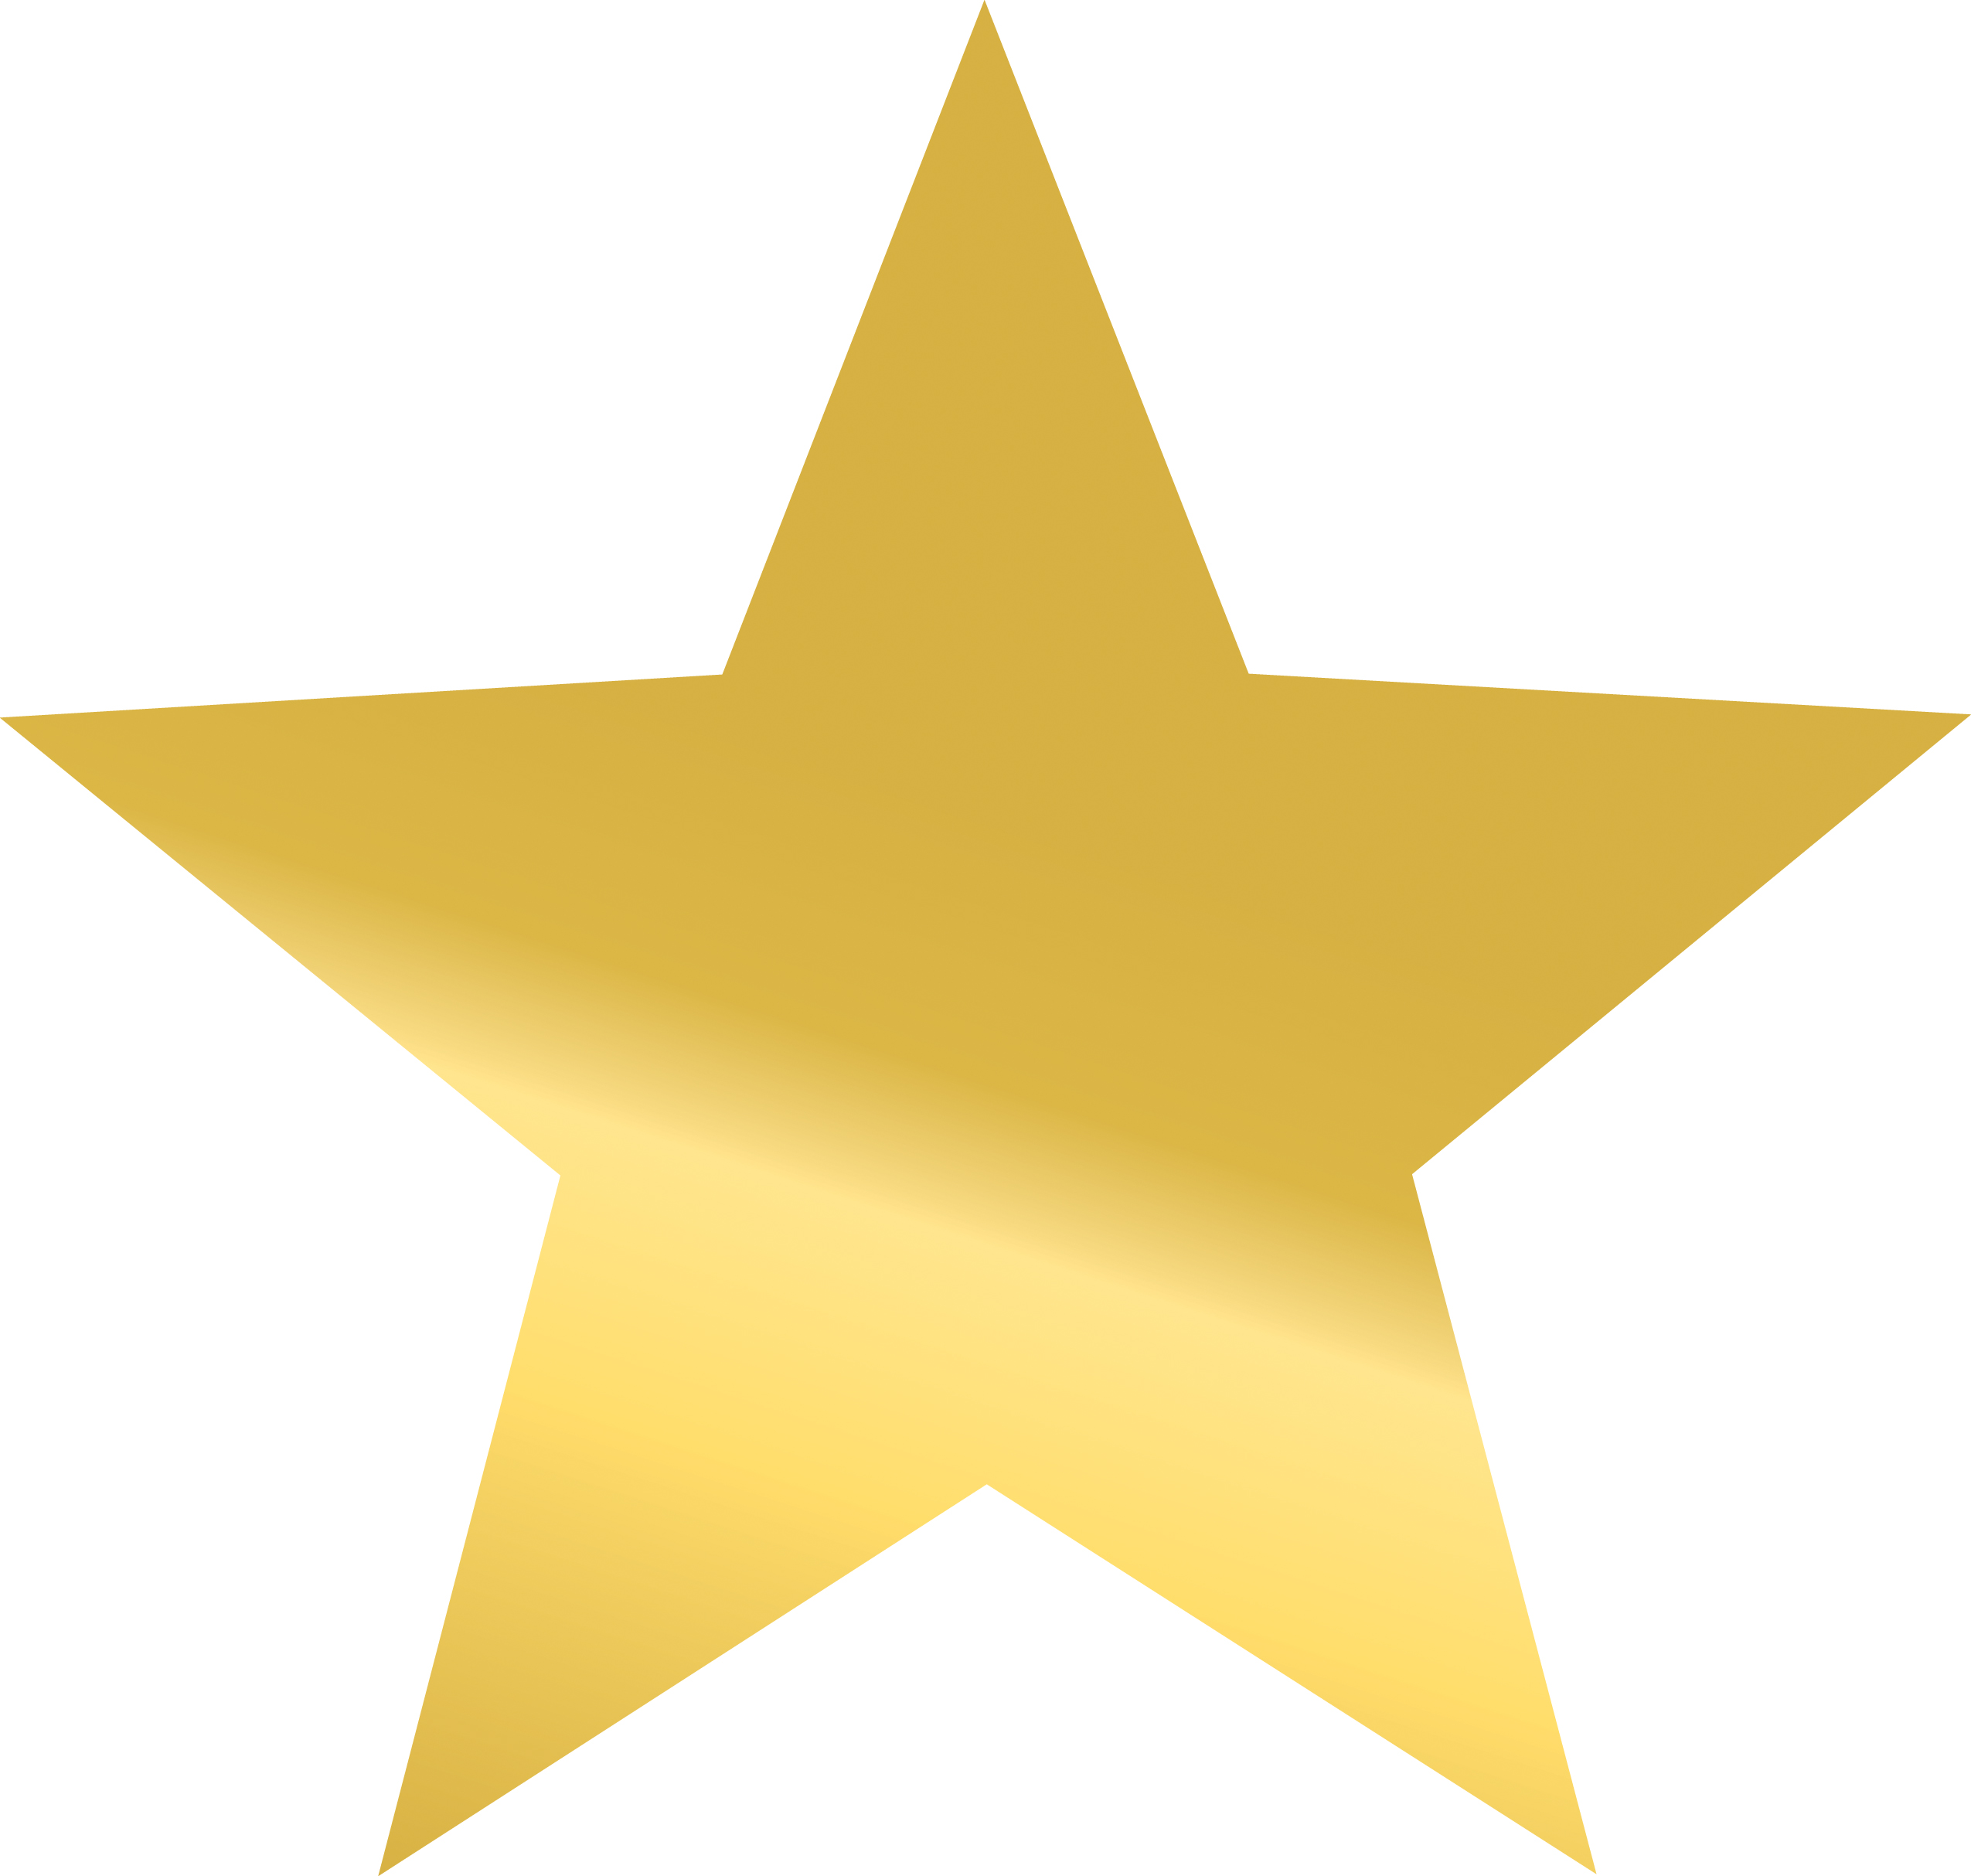 Free Gold Star Sticker Png, Download Free Clip Art, Free.